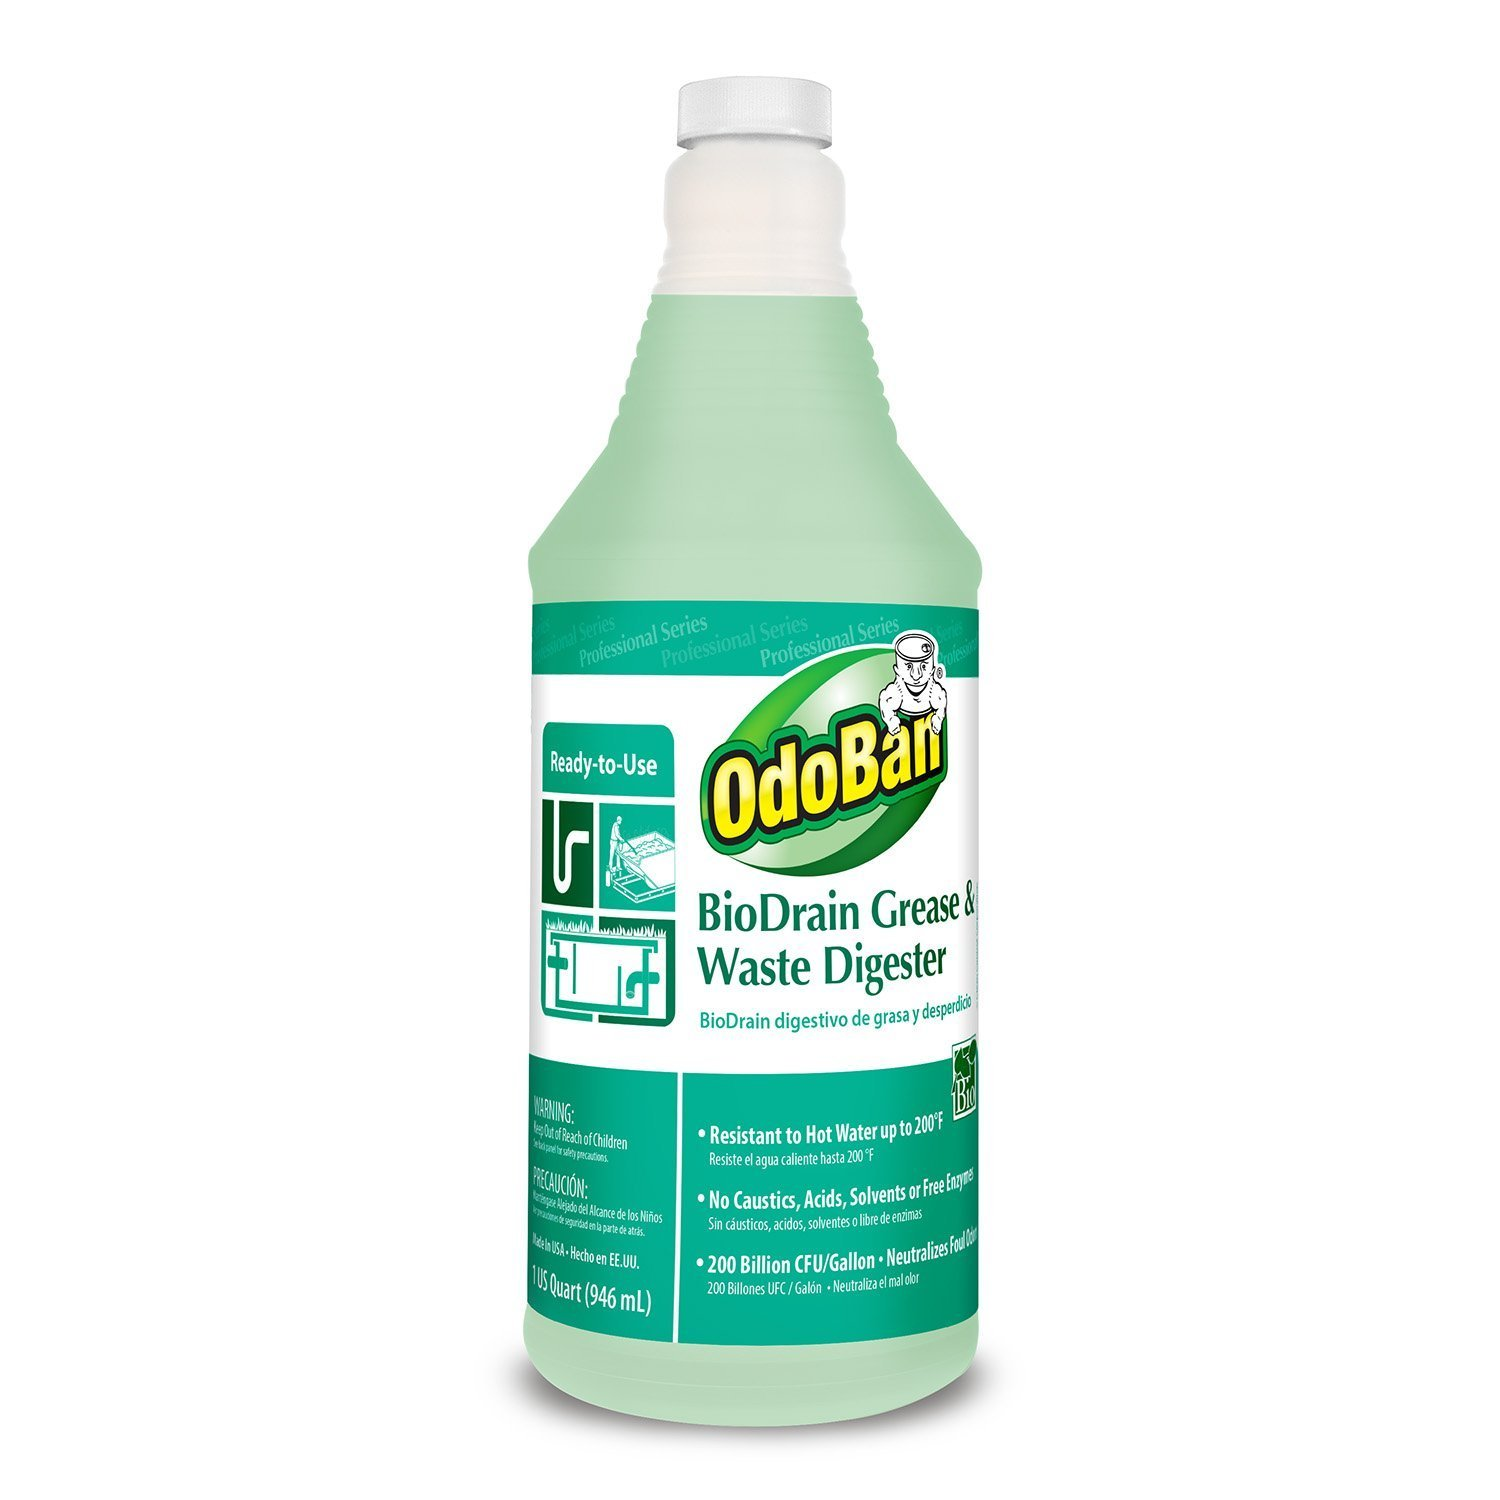 OdoBan 928062-Q12 RTU BioDrain Grease and Waste Digester, 1 qt Bottle